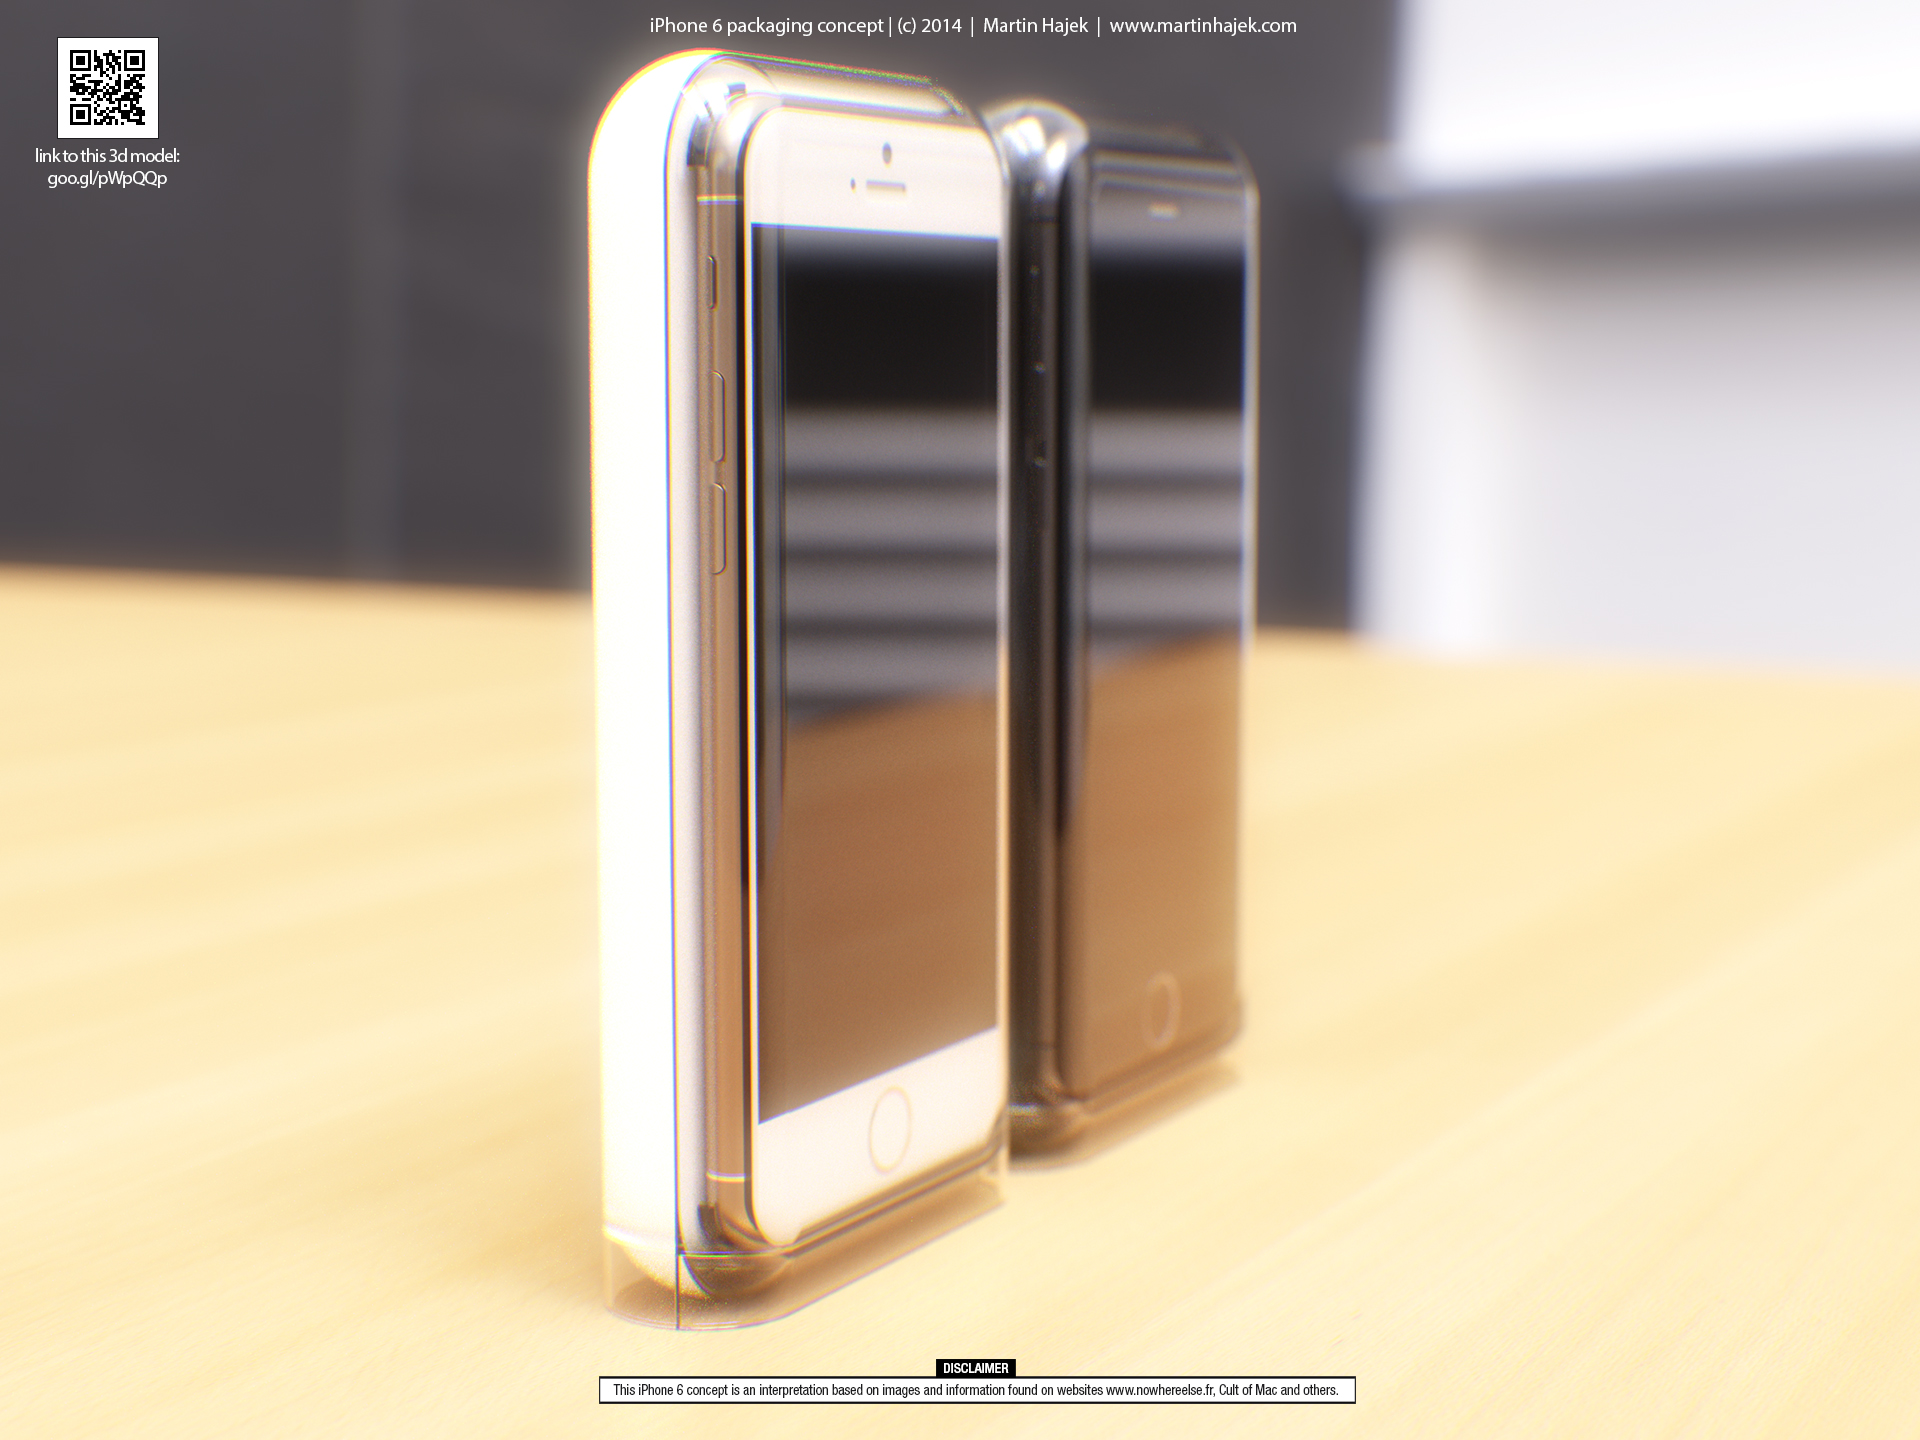 iPhone 6 concept - the box